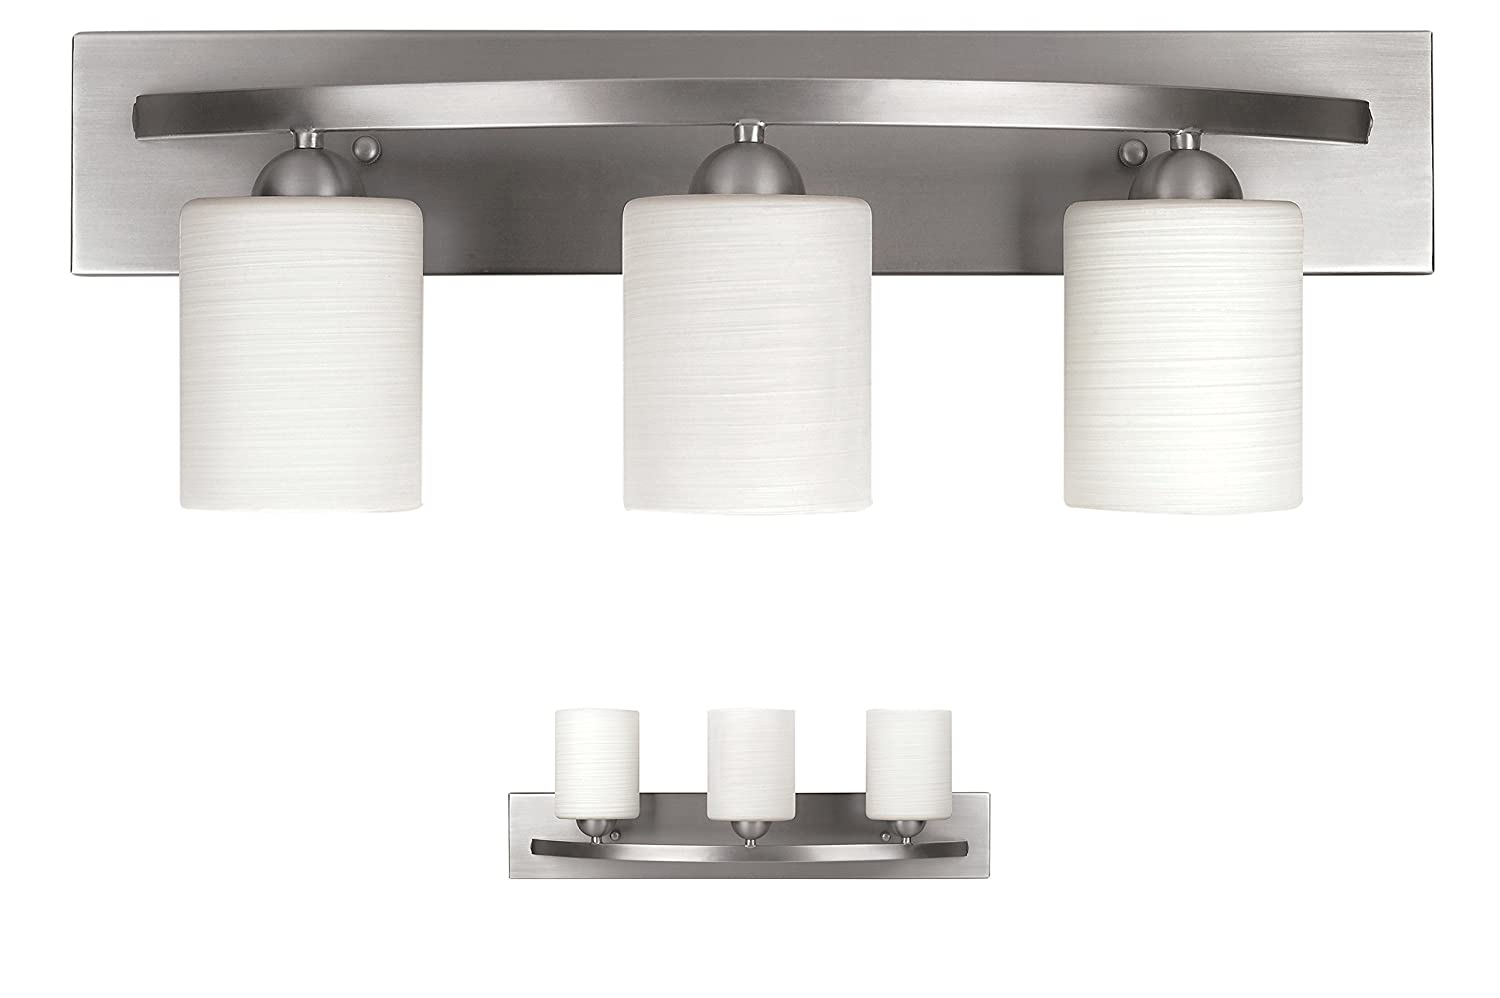 Superbe WholesalePlumbing IVL370A03BPT 3 Bulb Vanity Light Fixture Bath Interior  Lighting, Brushed Nickel     Amazon.com